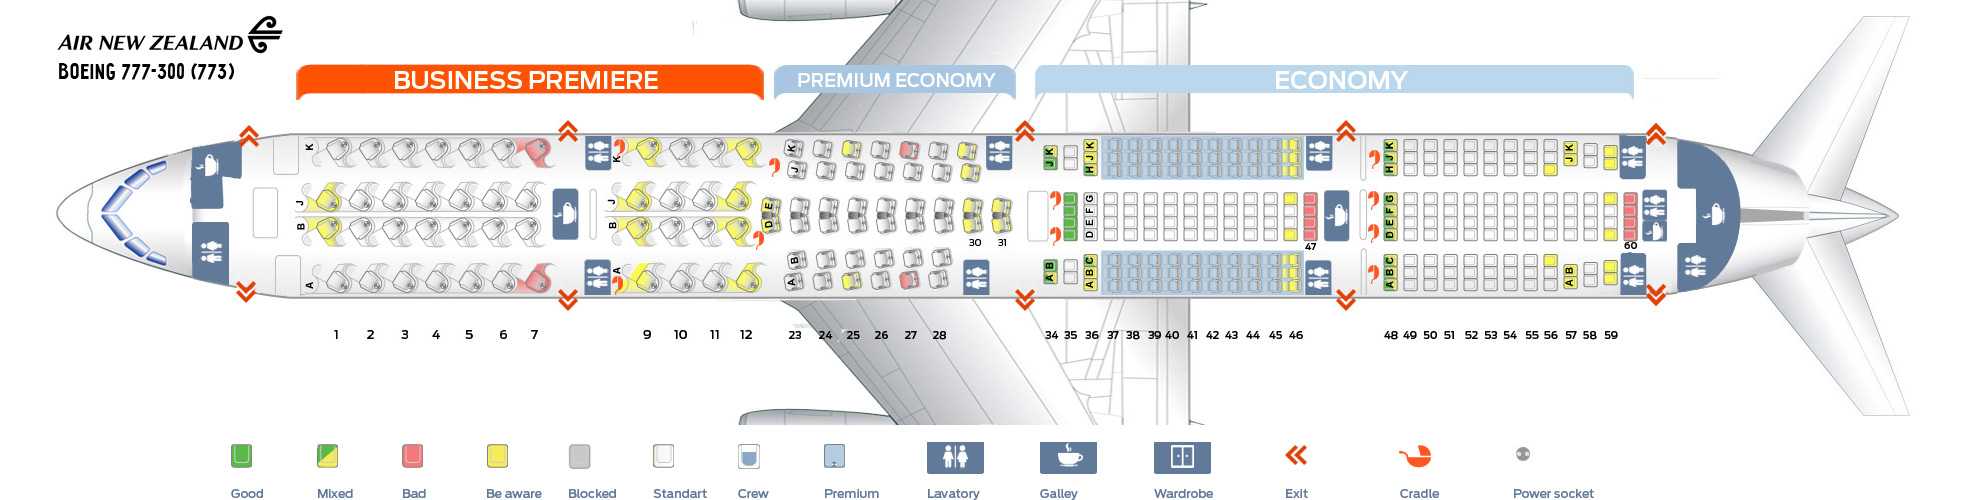 Seat Map Boeing 777-300 Air New Zealand